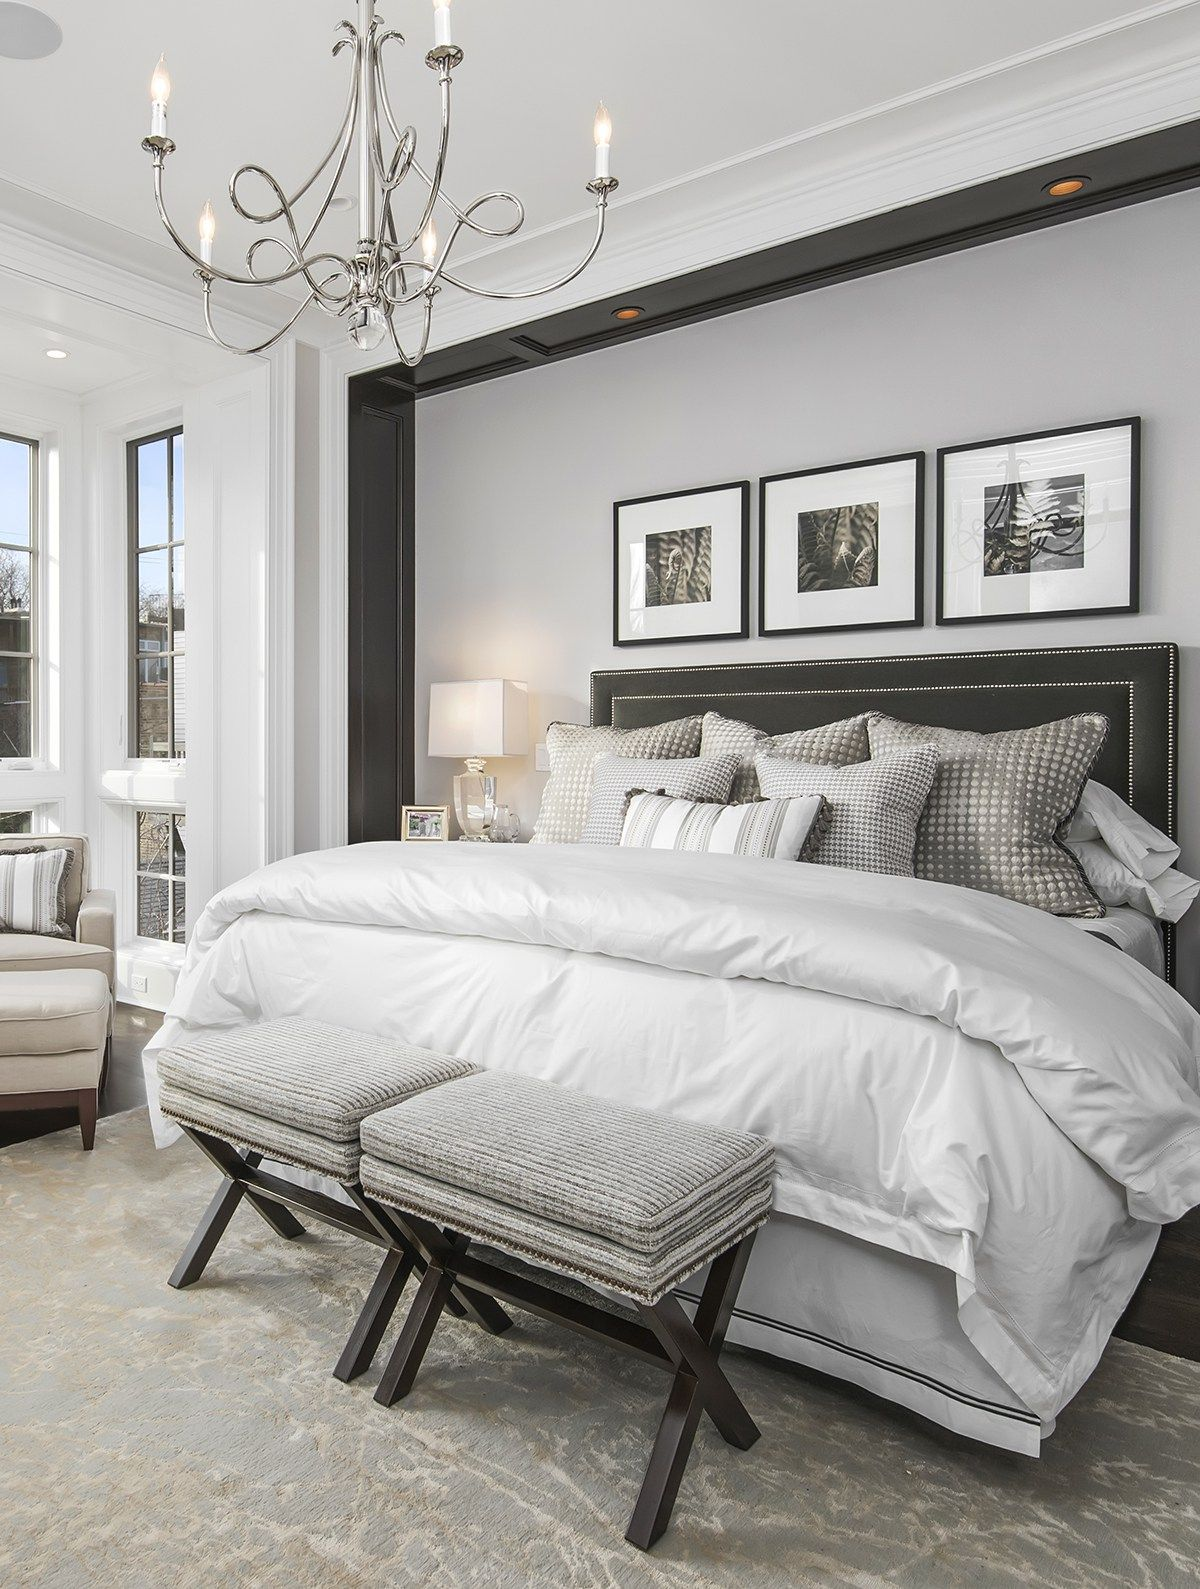 Bedroom Ideas from the Top Designers Sophisticated